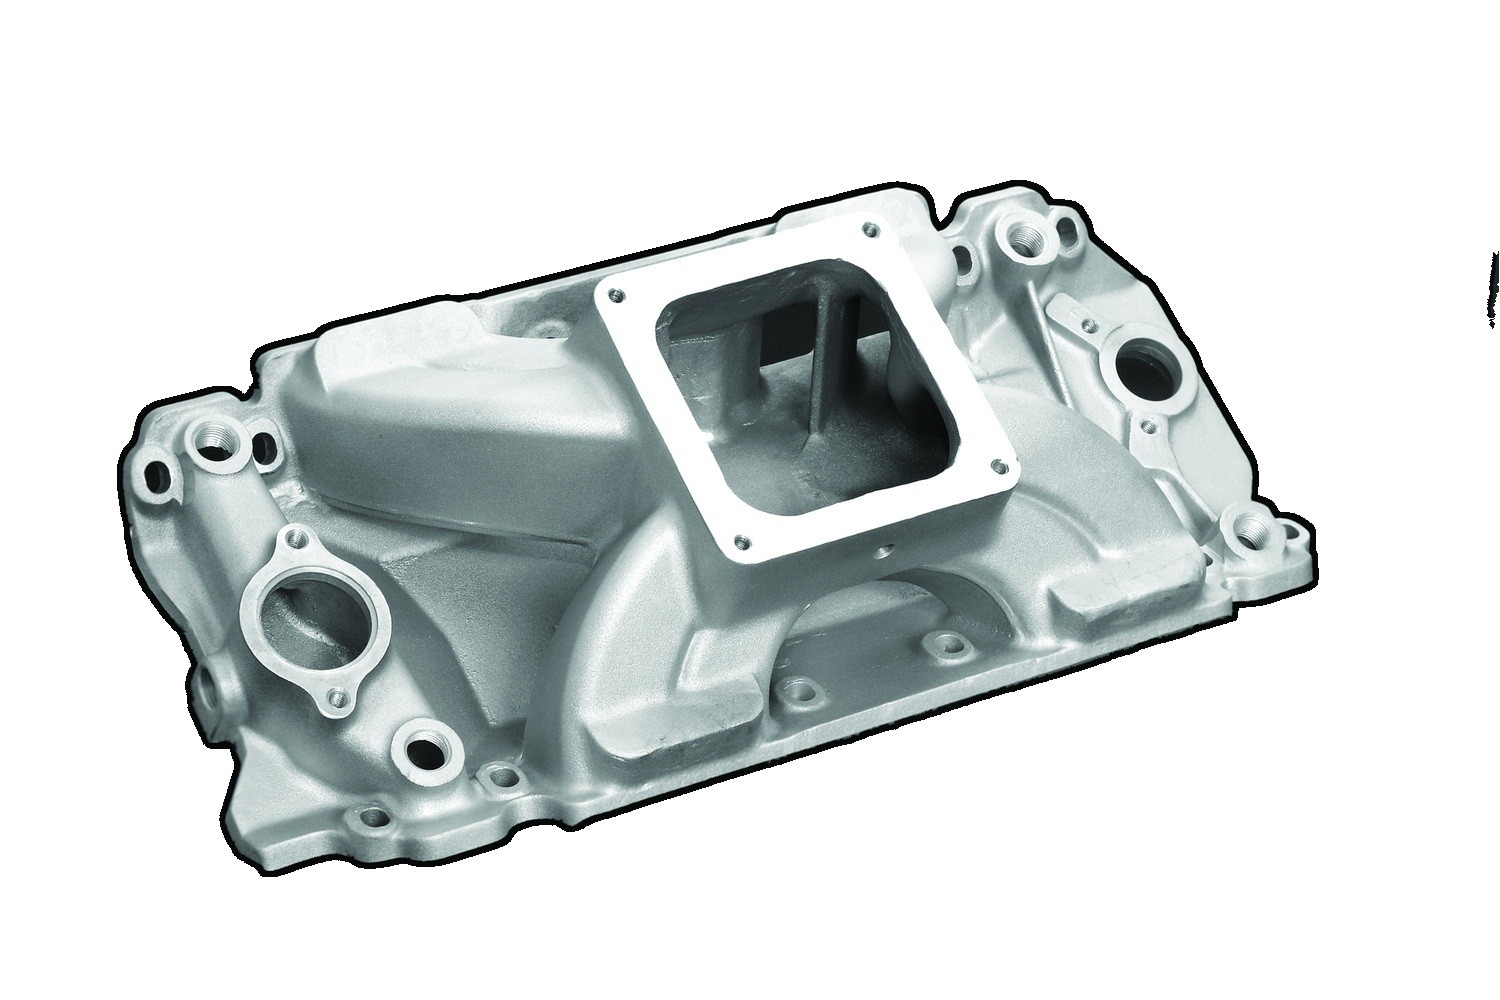 PROFESSIONAL PRODUCTS - Hurricane(TM) Engine Intake Manifold - PF2 53035